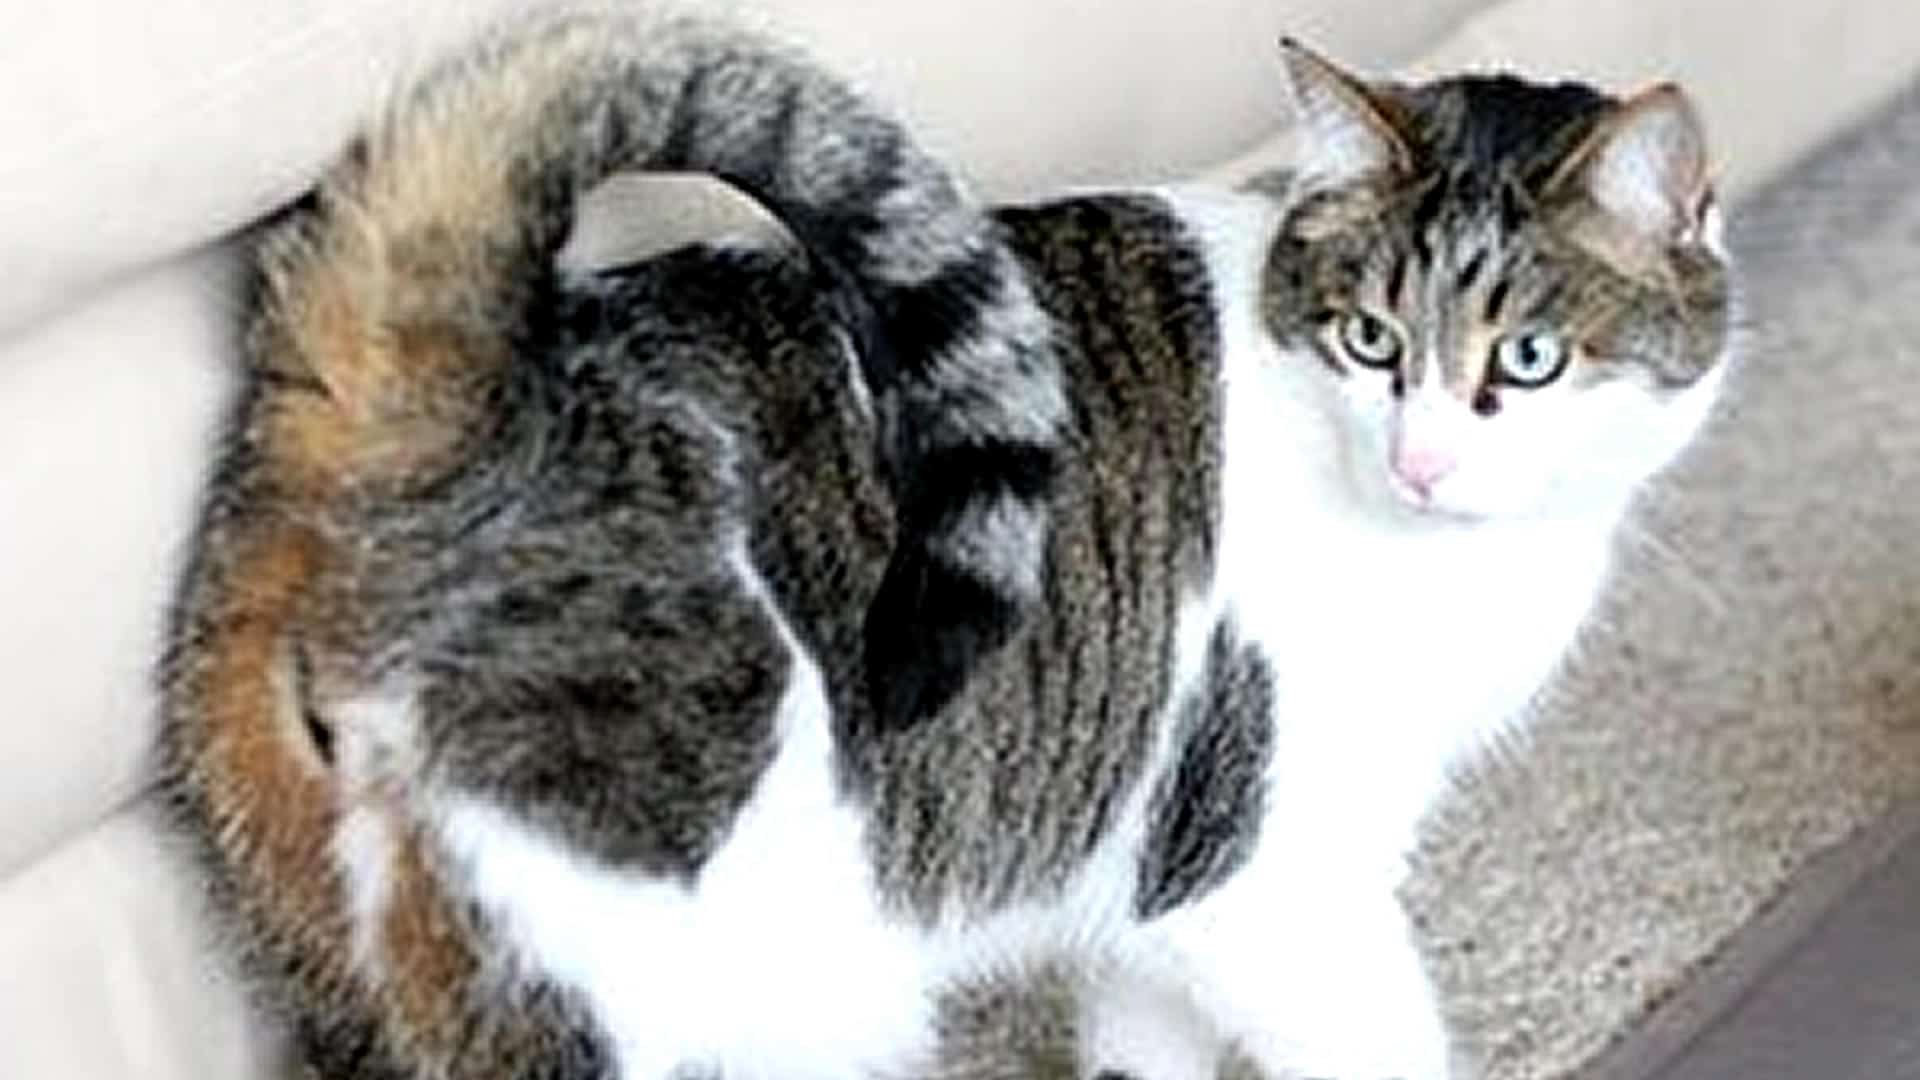 American Ringtail cat with curly tail